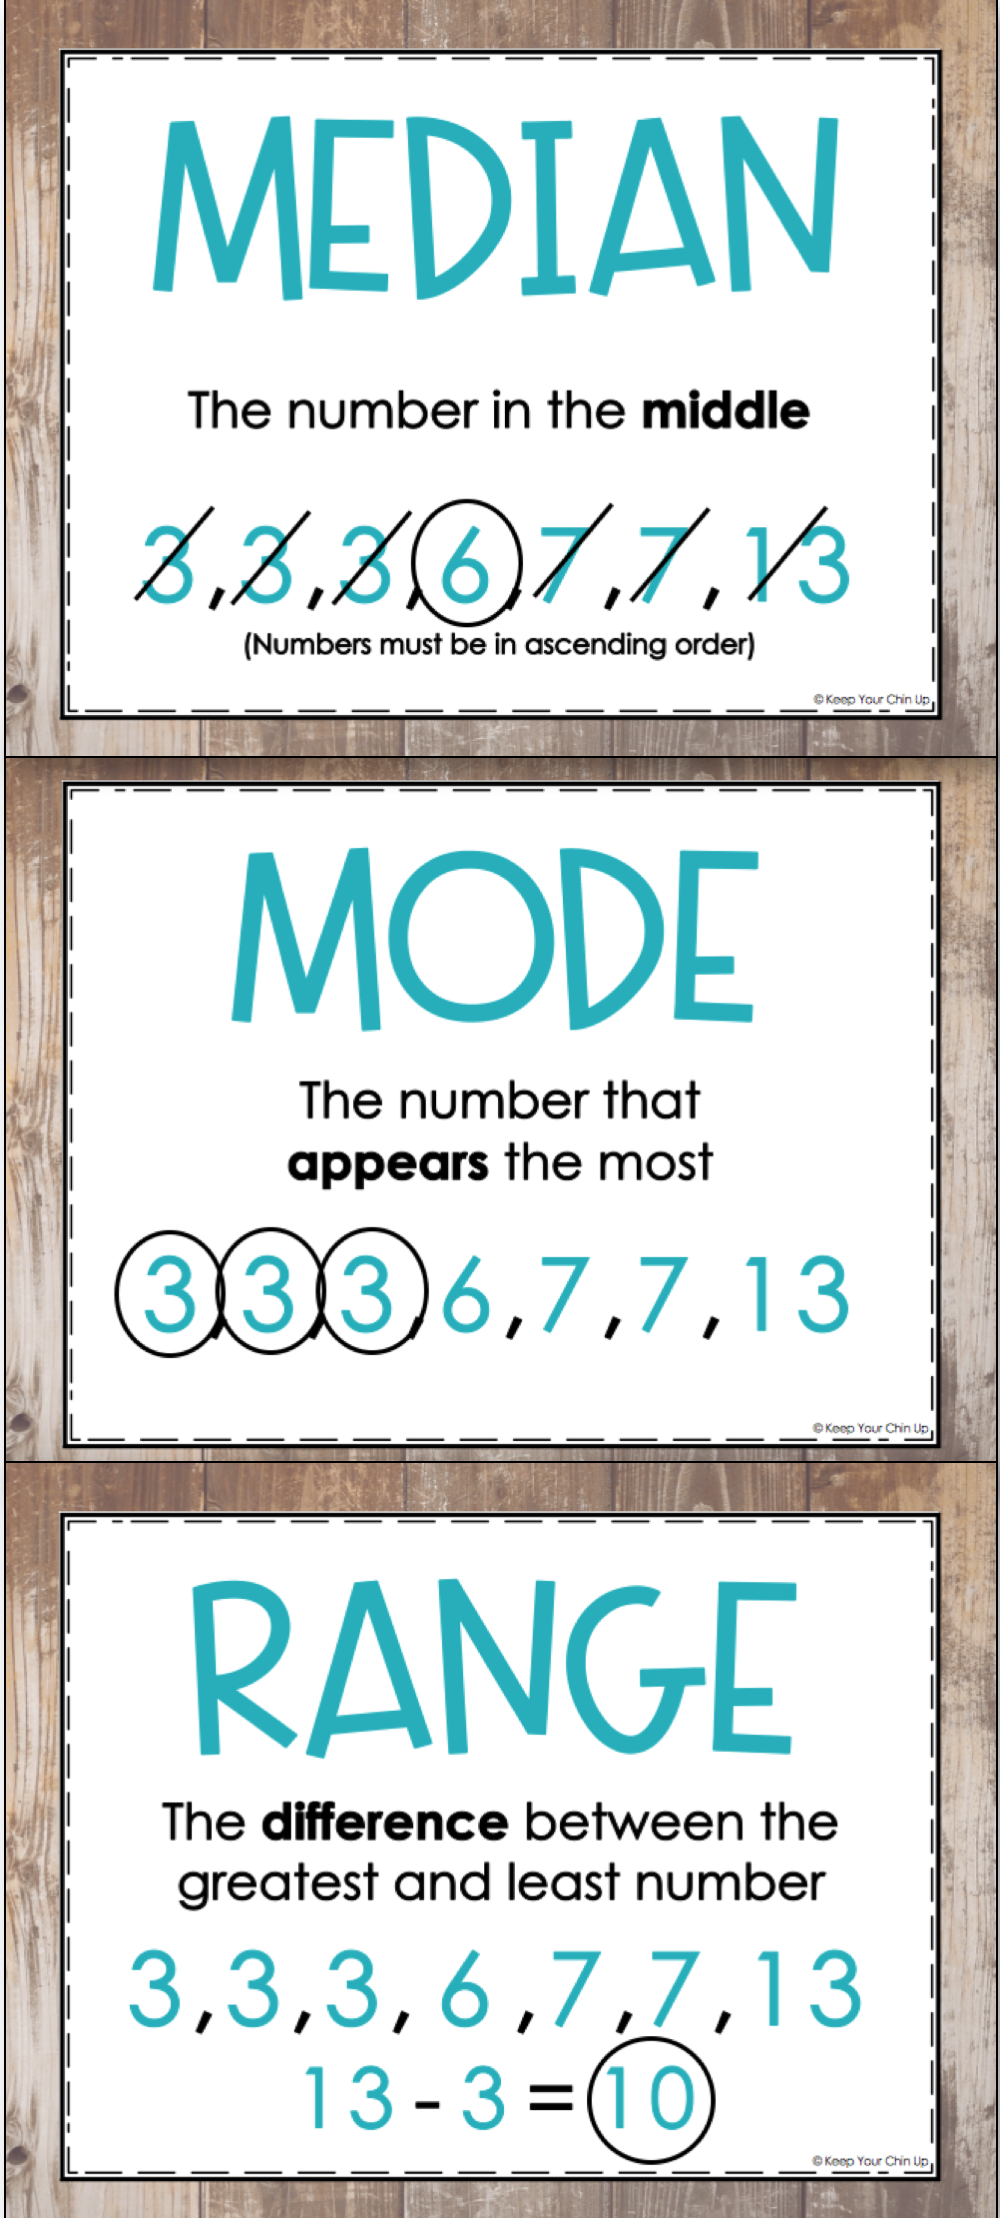 Mean, Median, Mode, and Range Posters | worksheets | Pinterest ...